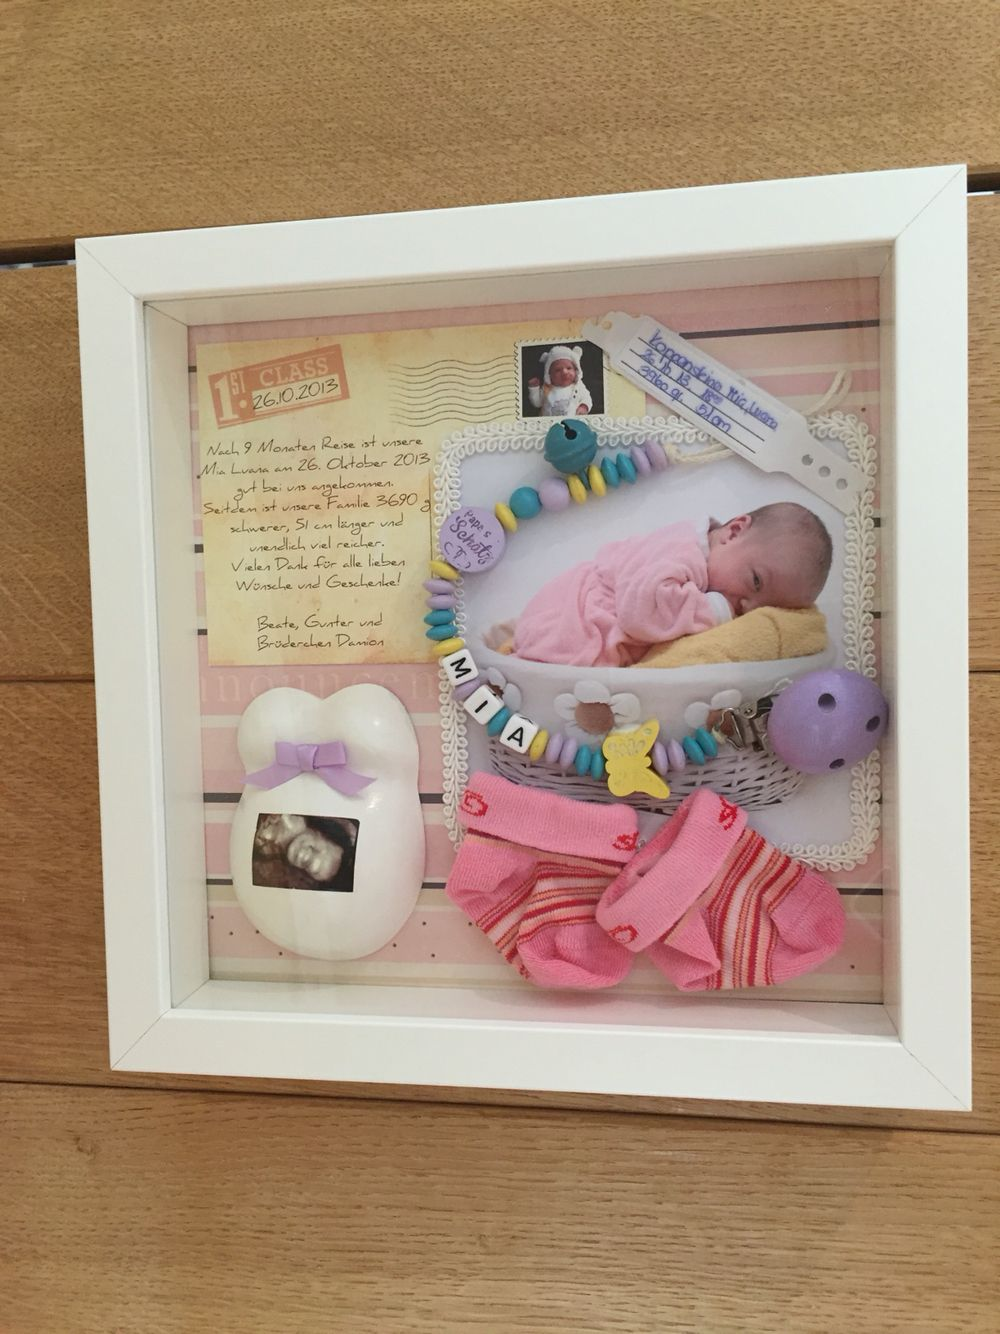 Baby Bedroom In A Box Special: Birth Shadow Box, Baby Erinnerungsrahmen, Bea's Plüschgips